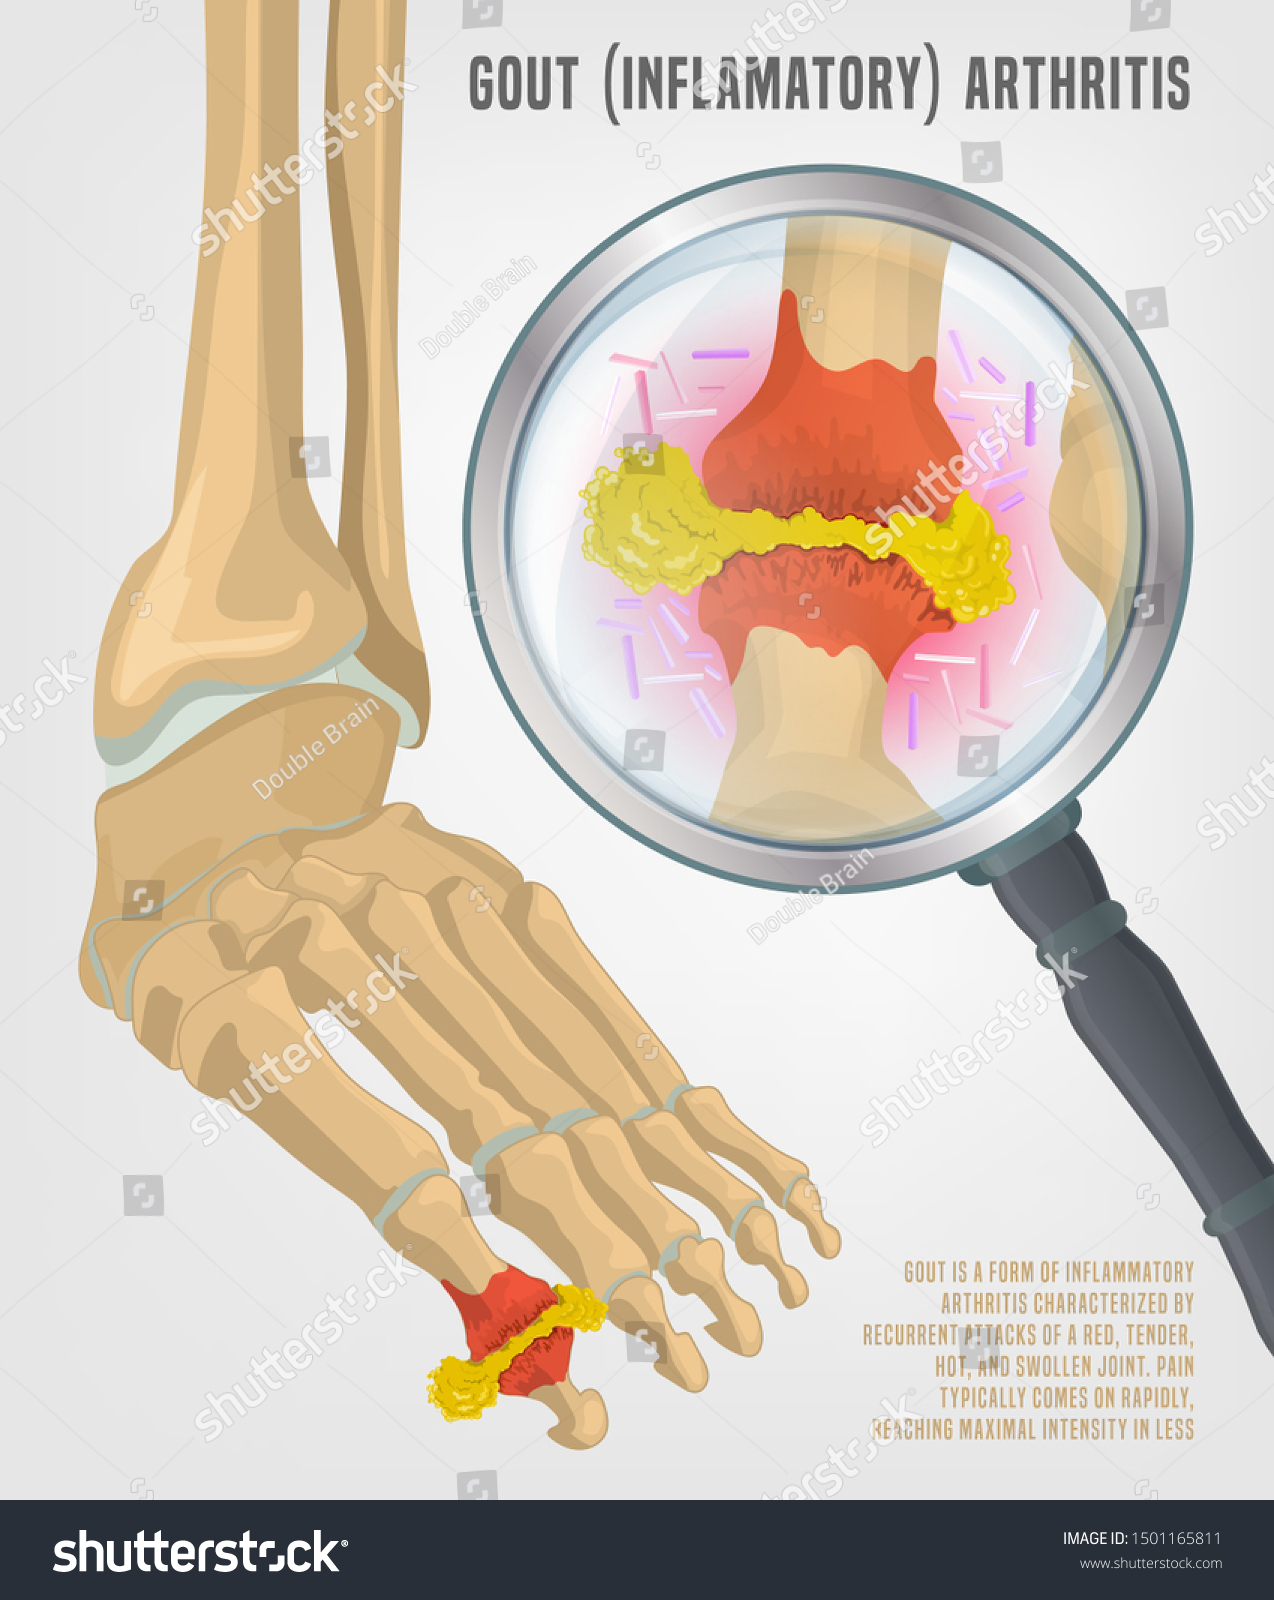 Gout Arthritis Image Joint Pain Human Stock Vector Royalty Free 1501165811